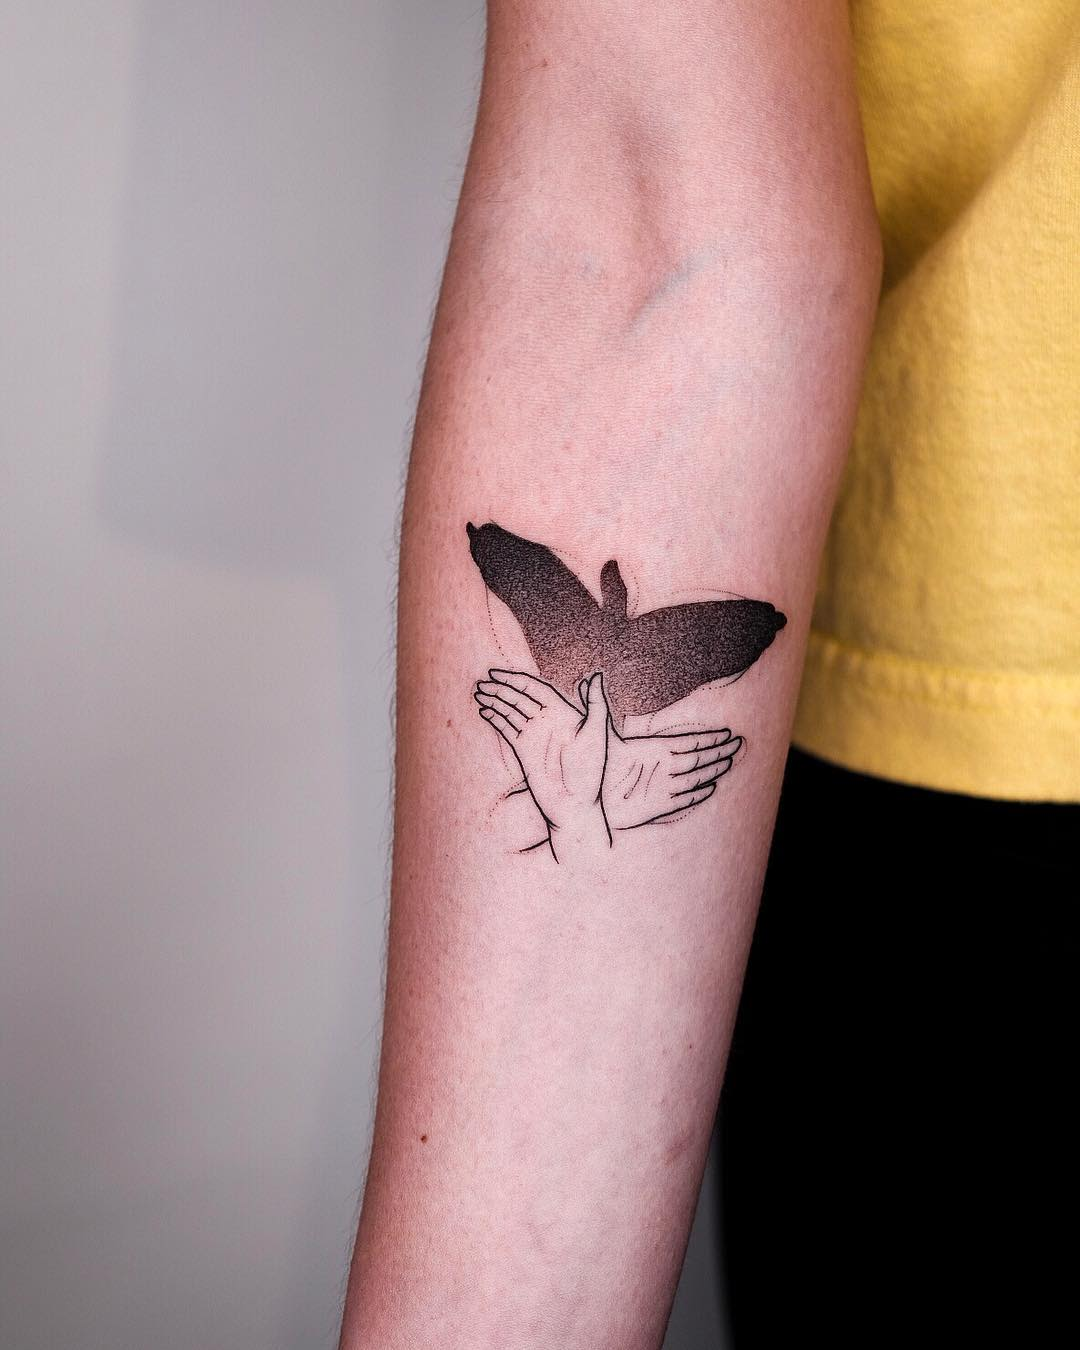 Marc Bonin shadow hands tattoo